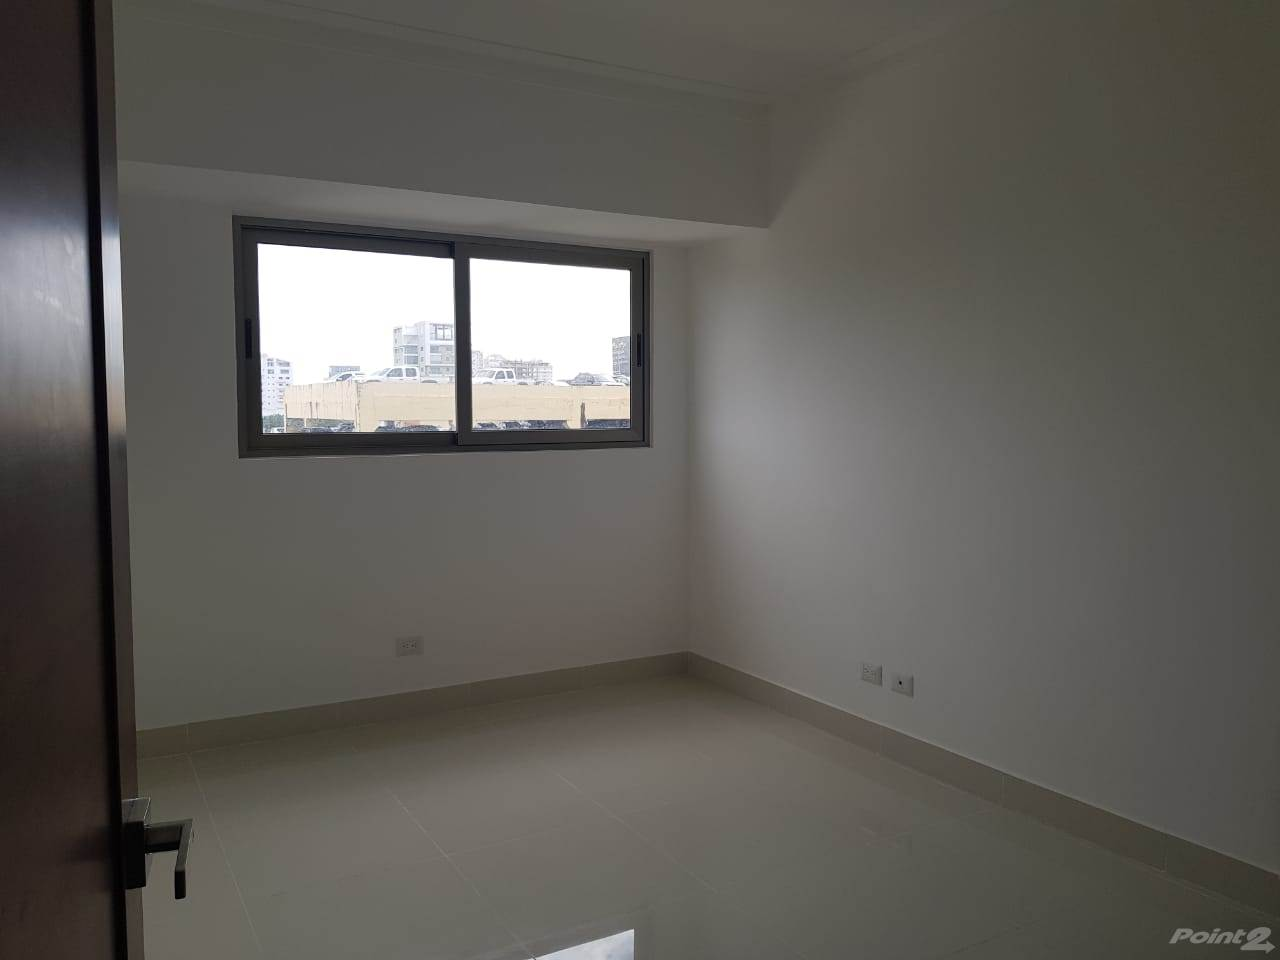 Condominium for rent in APTO EN VENTA, Ensanche La Julia, Distrito Nacional ,10148  , Dominican Republic